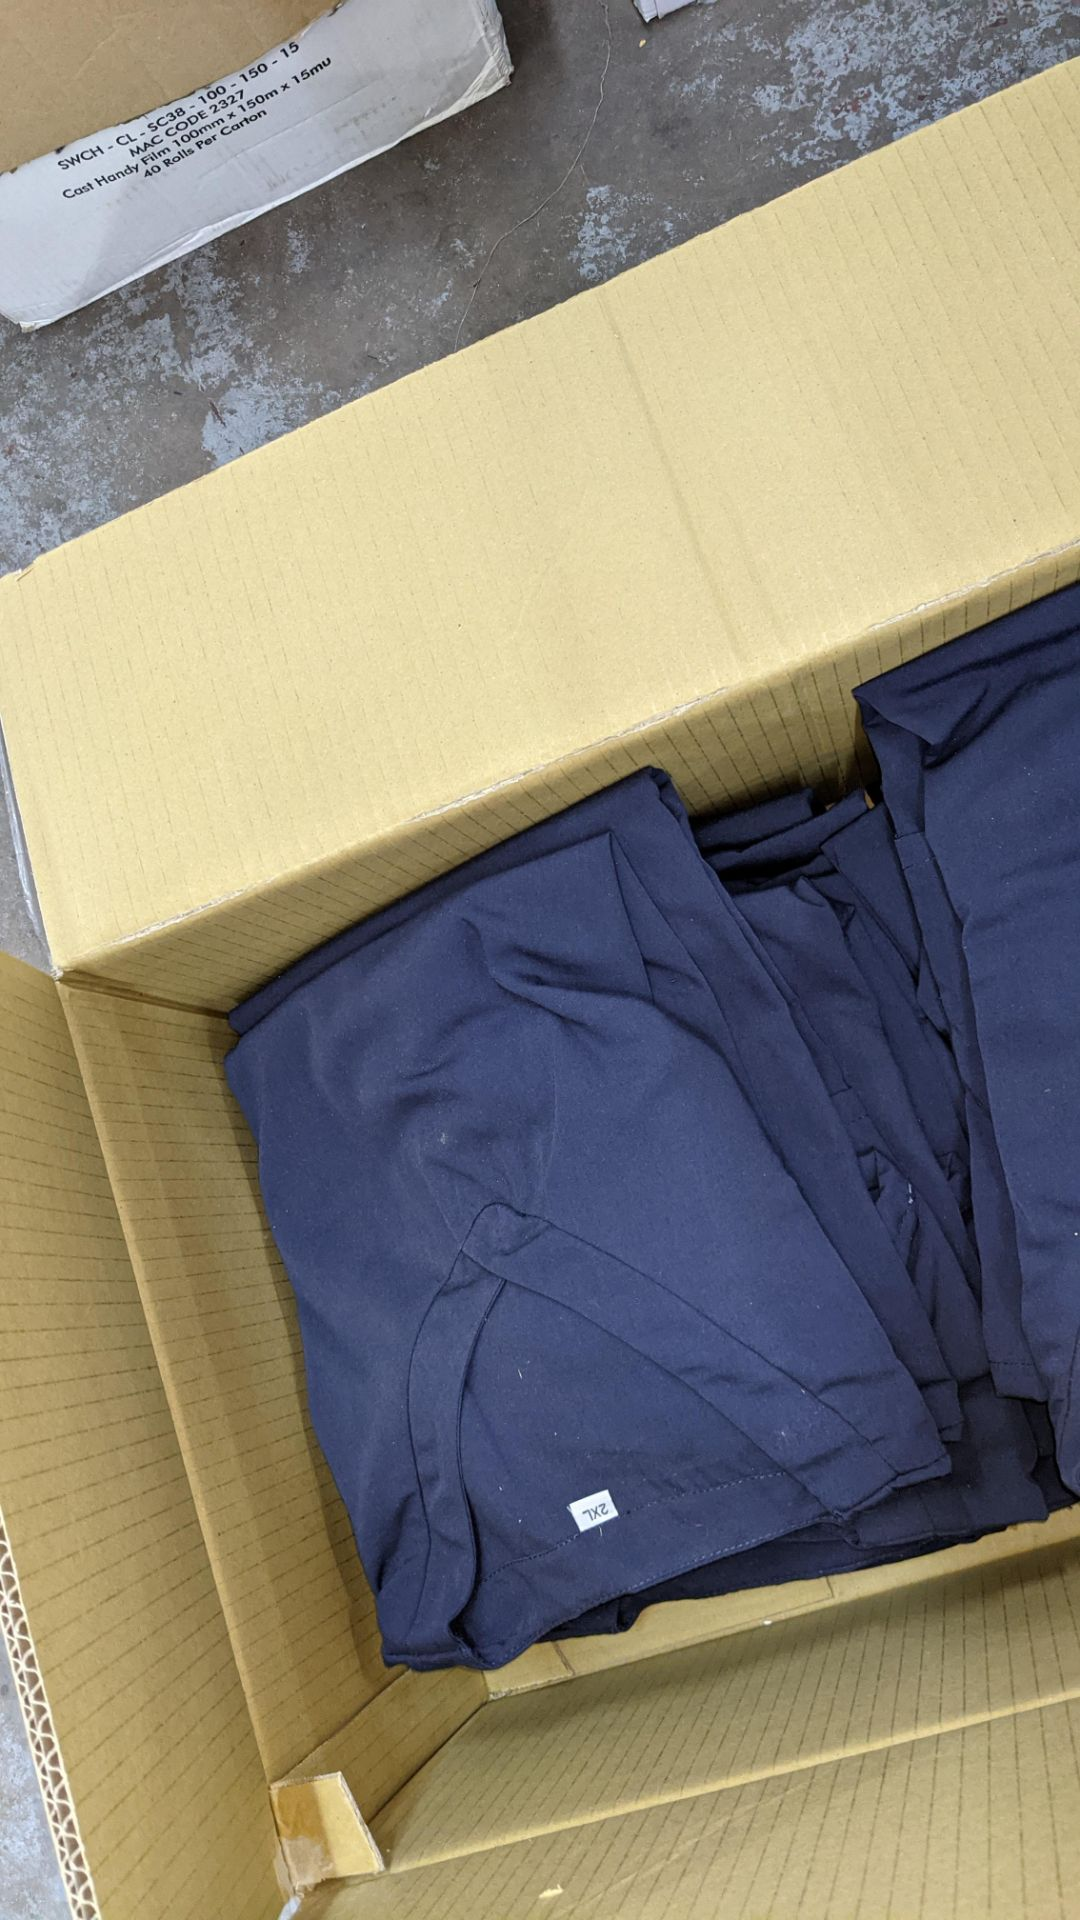 Approx 48 off navy V neck t-shirts - the contents of 2 boxes - Image 7 of 7